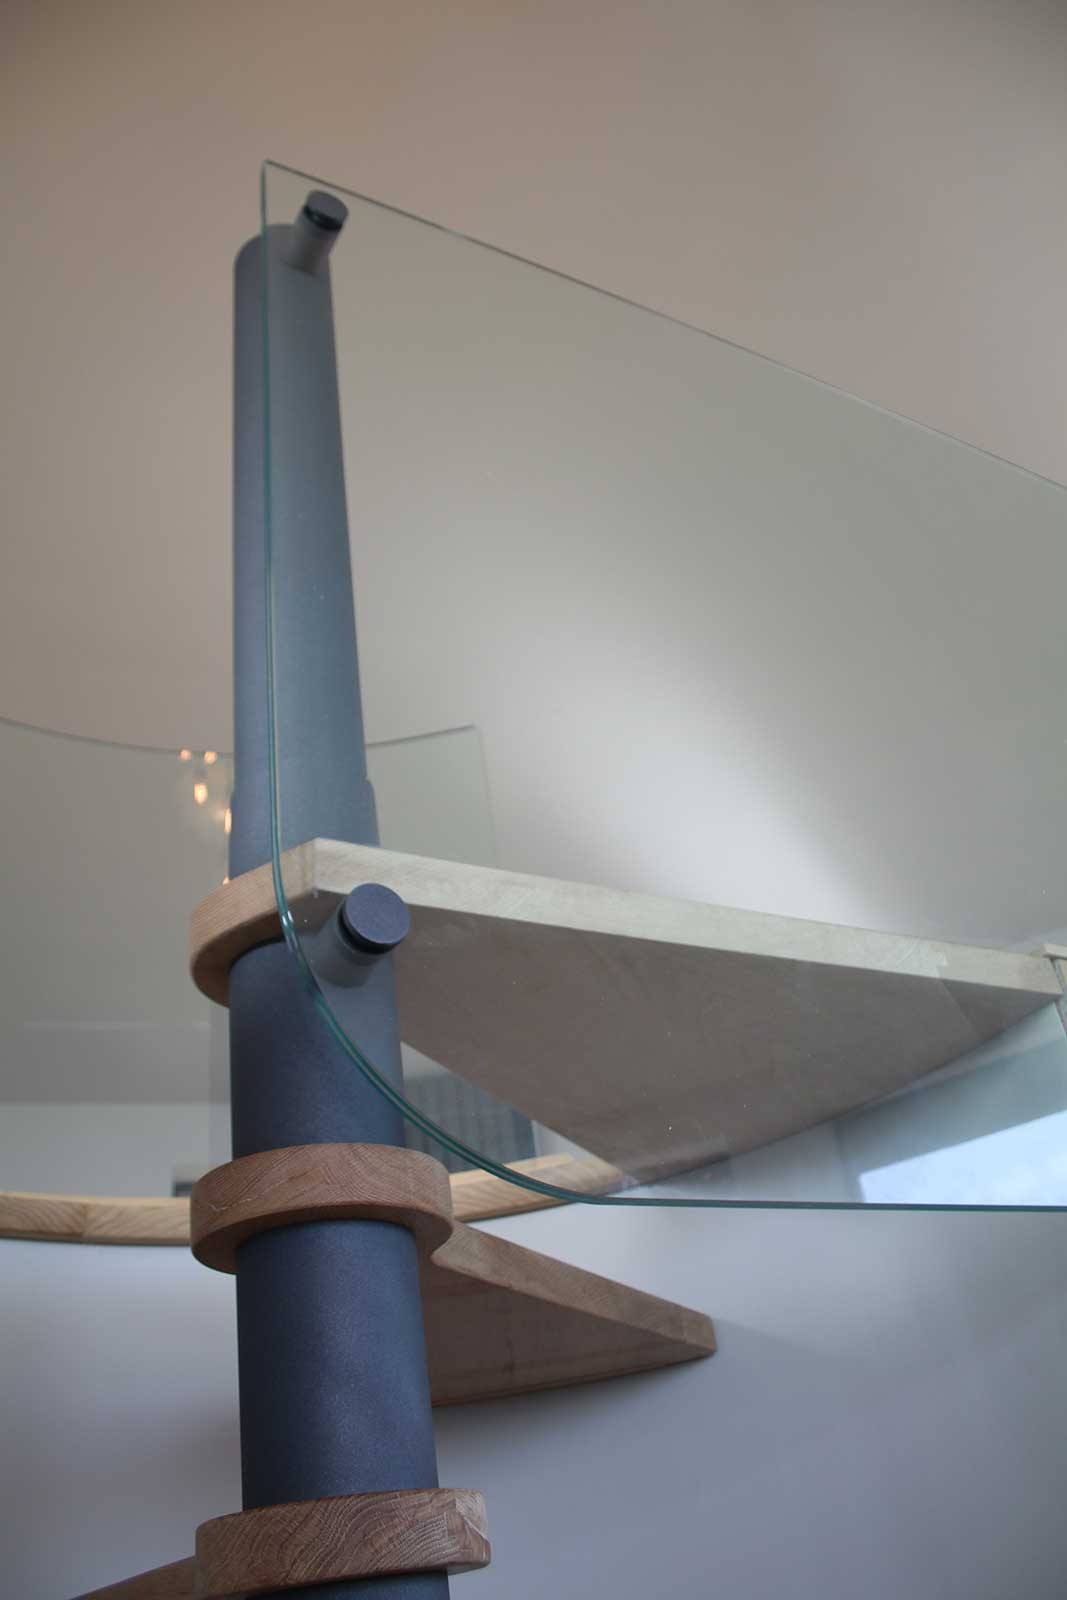 Shaped Radius Edge of Glass Balustrade Panel